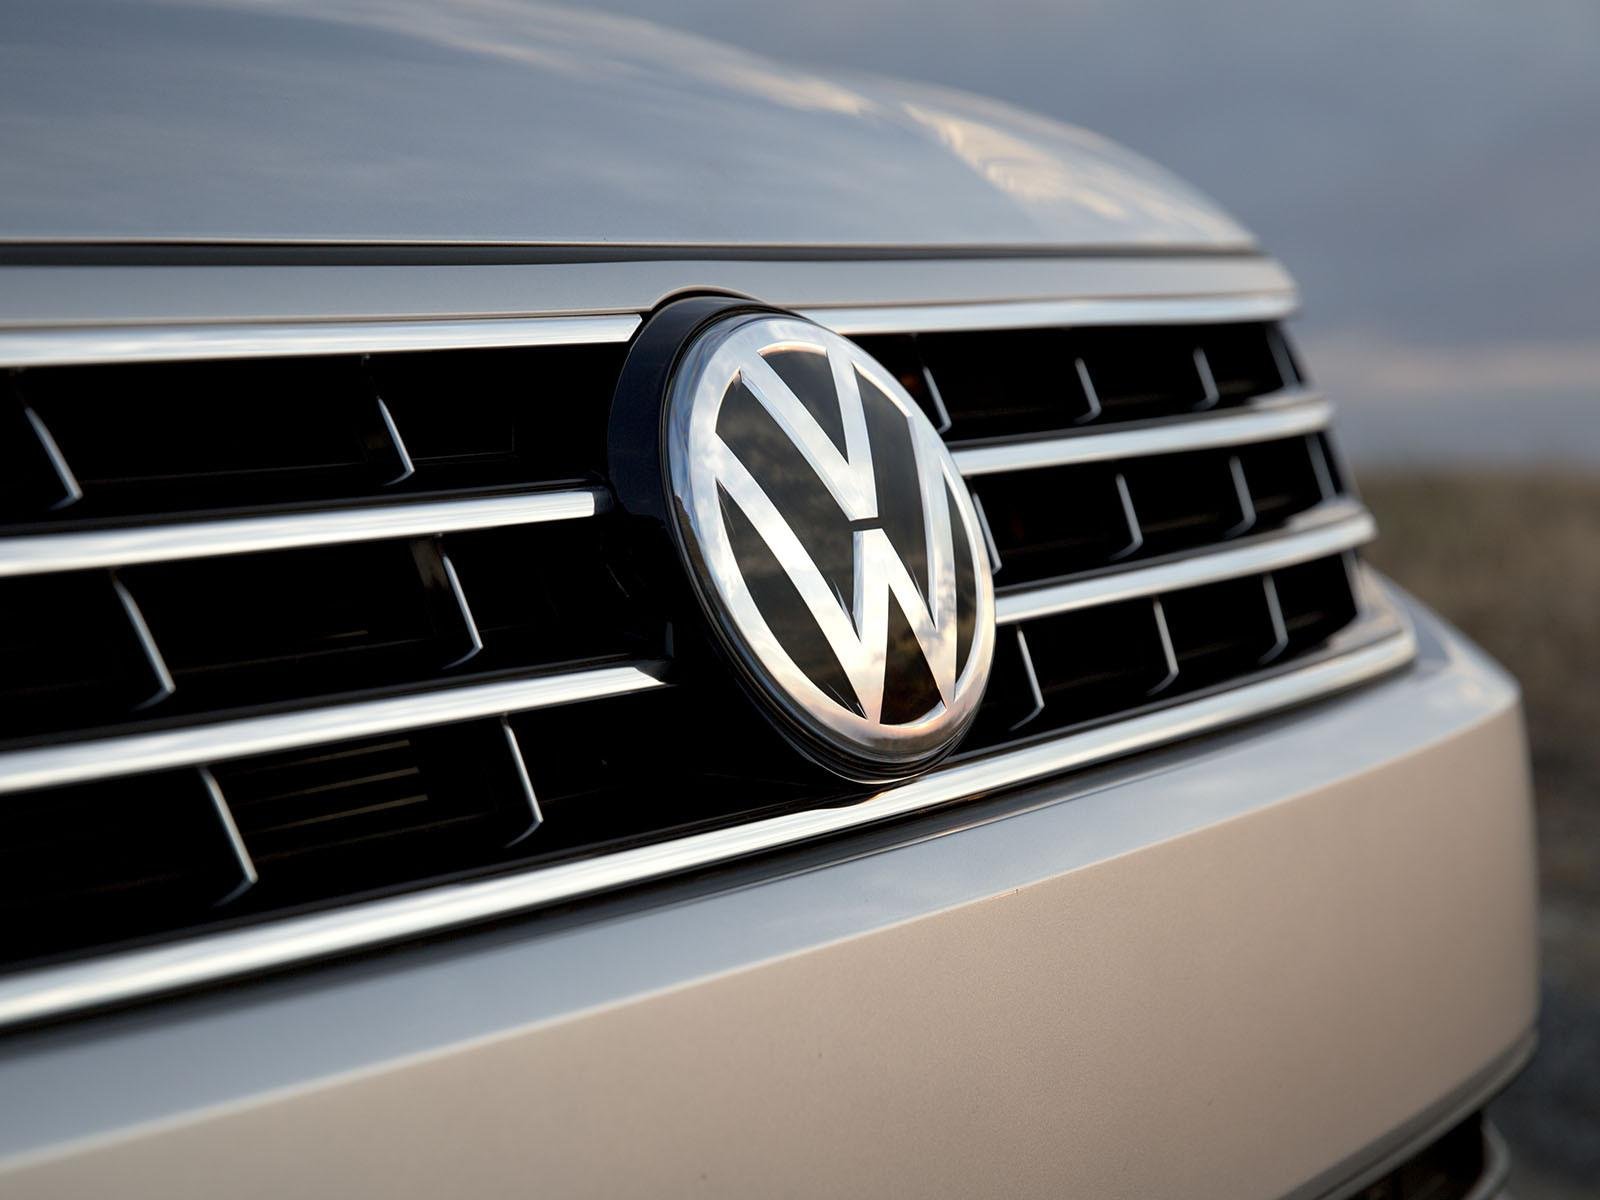 VW attorney says owners will get 'generous' compensation